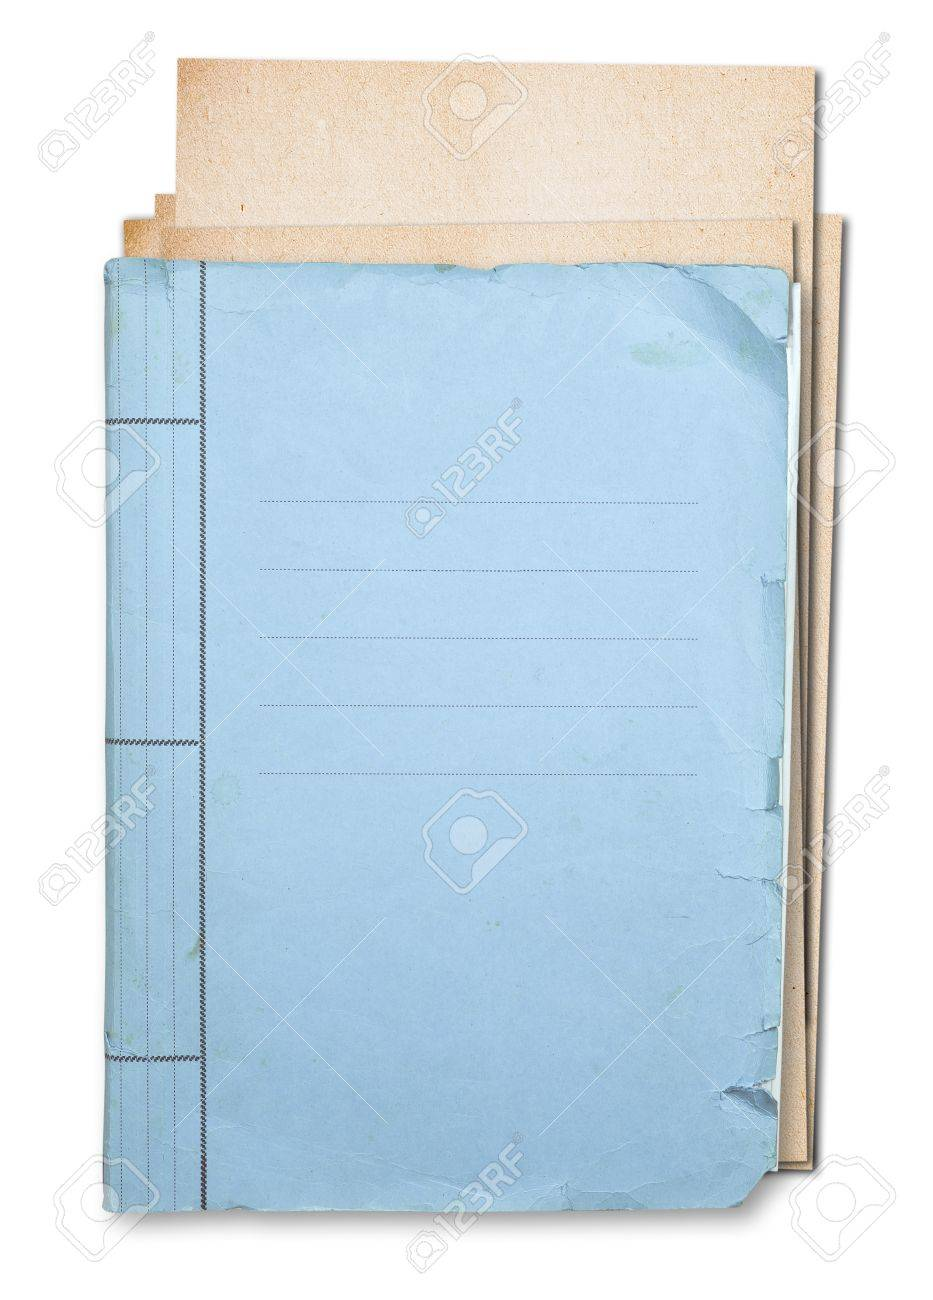 Old folder isolated on white background clipping path. Stock Photo - 17592470